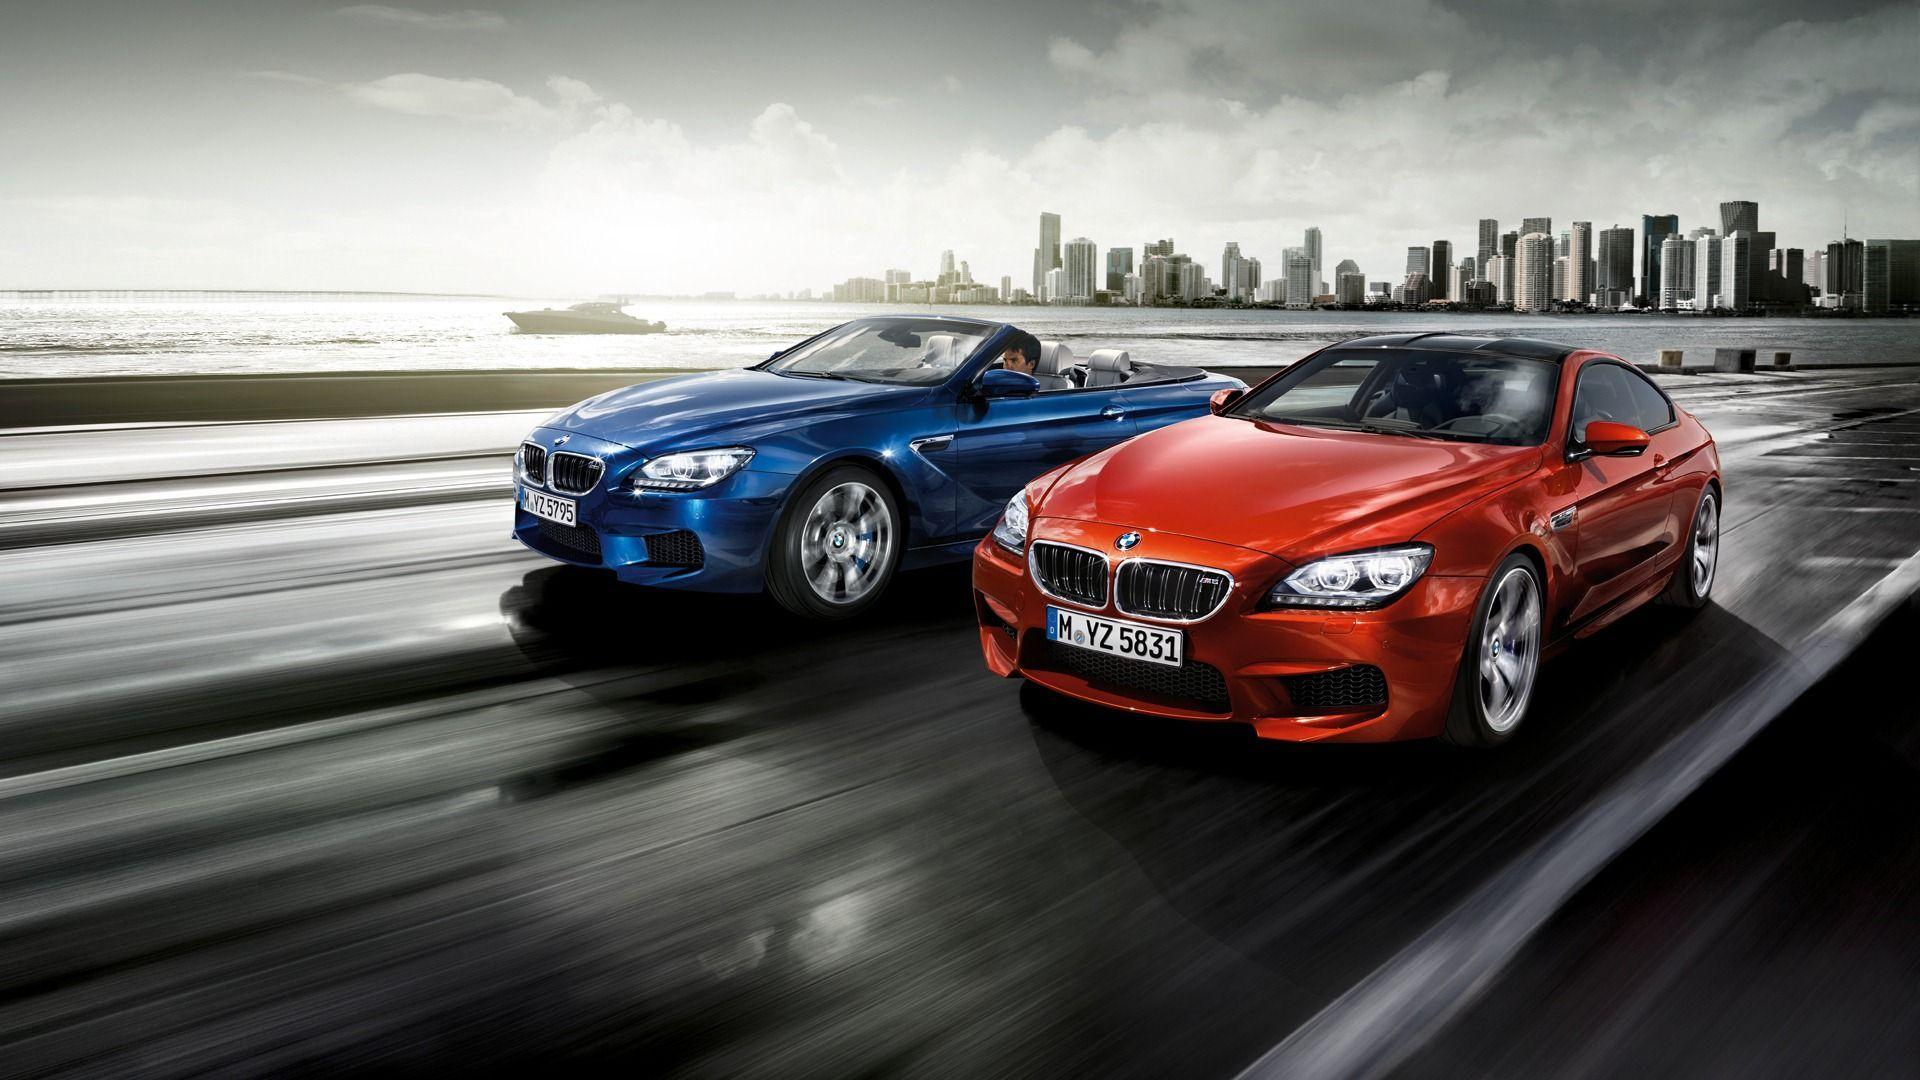 Hd-wallpapers-backgrounds-for-your-desktop-pc-All-Bmw-cars- Cars ...